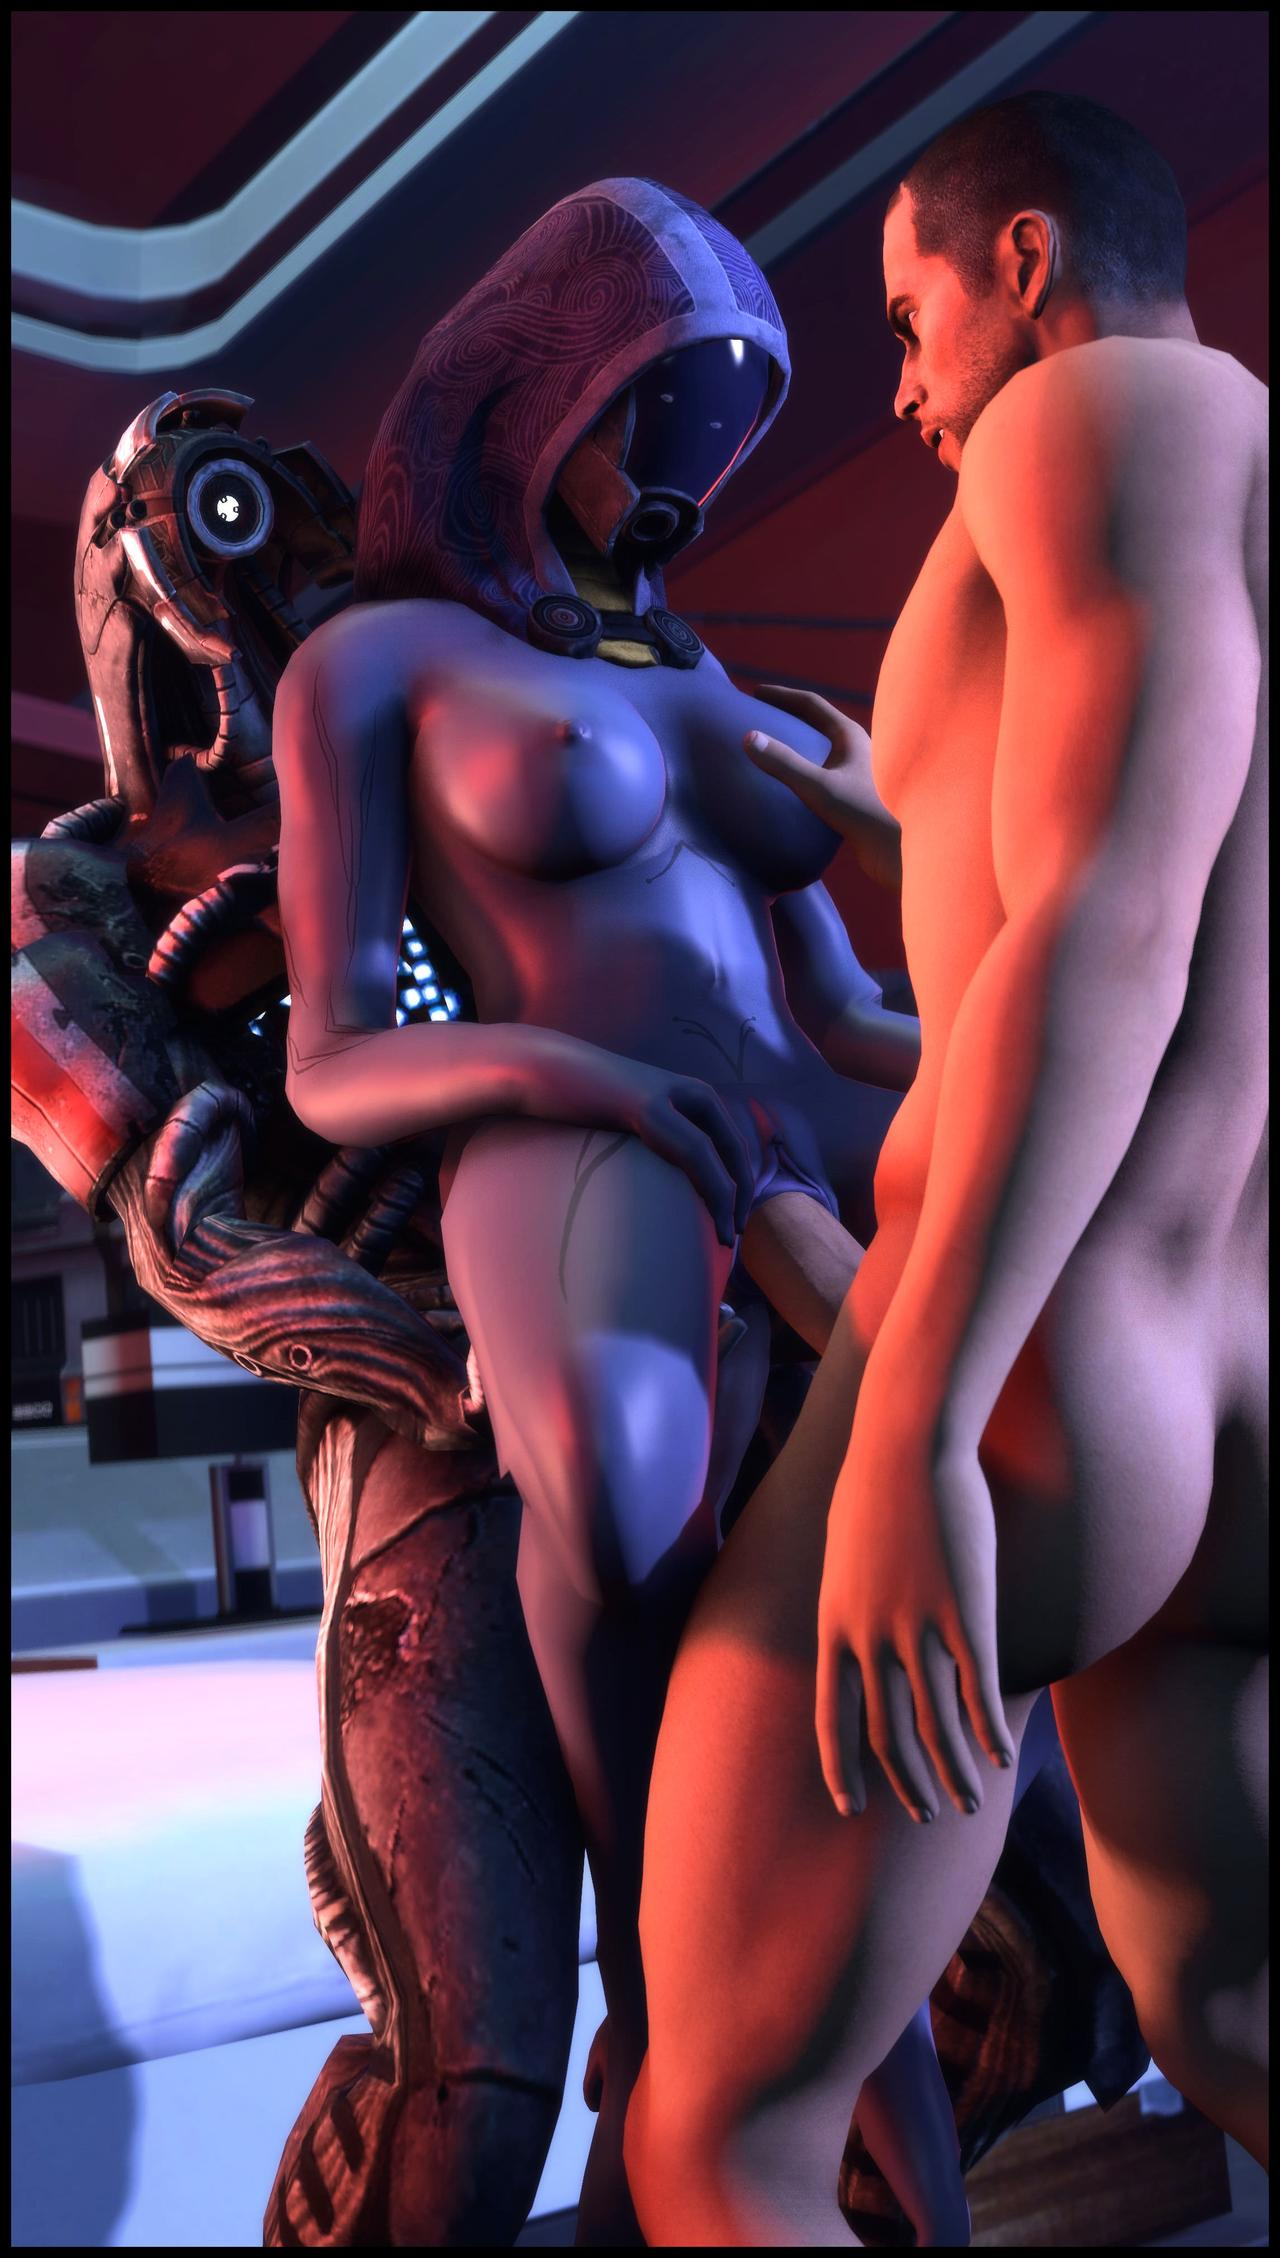 tali'zorah vas normandy, kal'reegar, quarian, commander shepard, mass effect